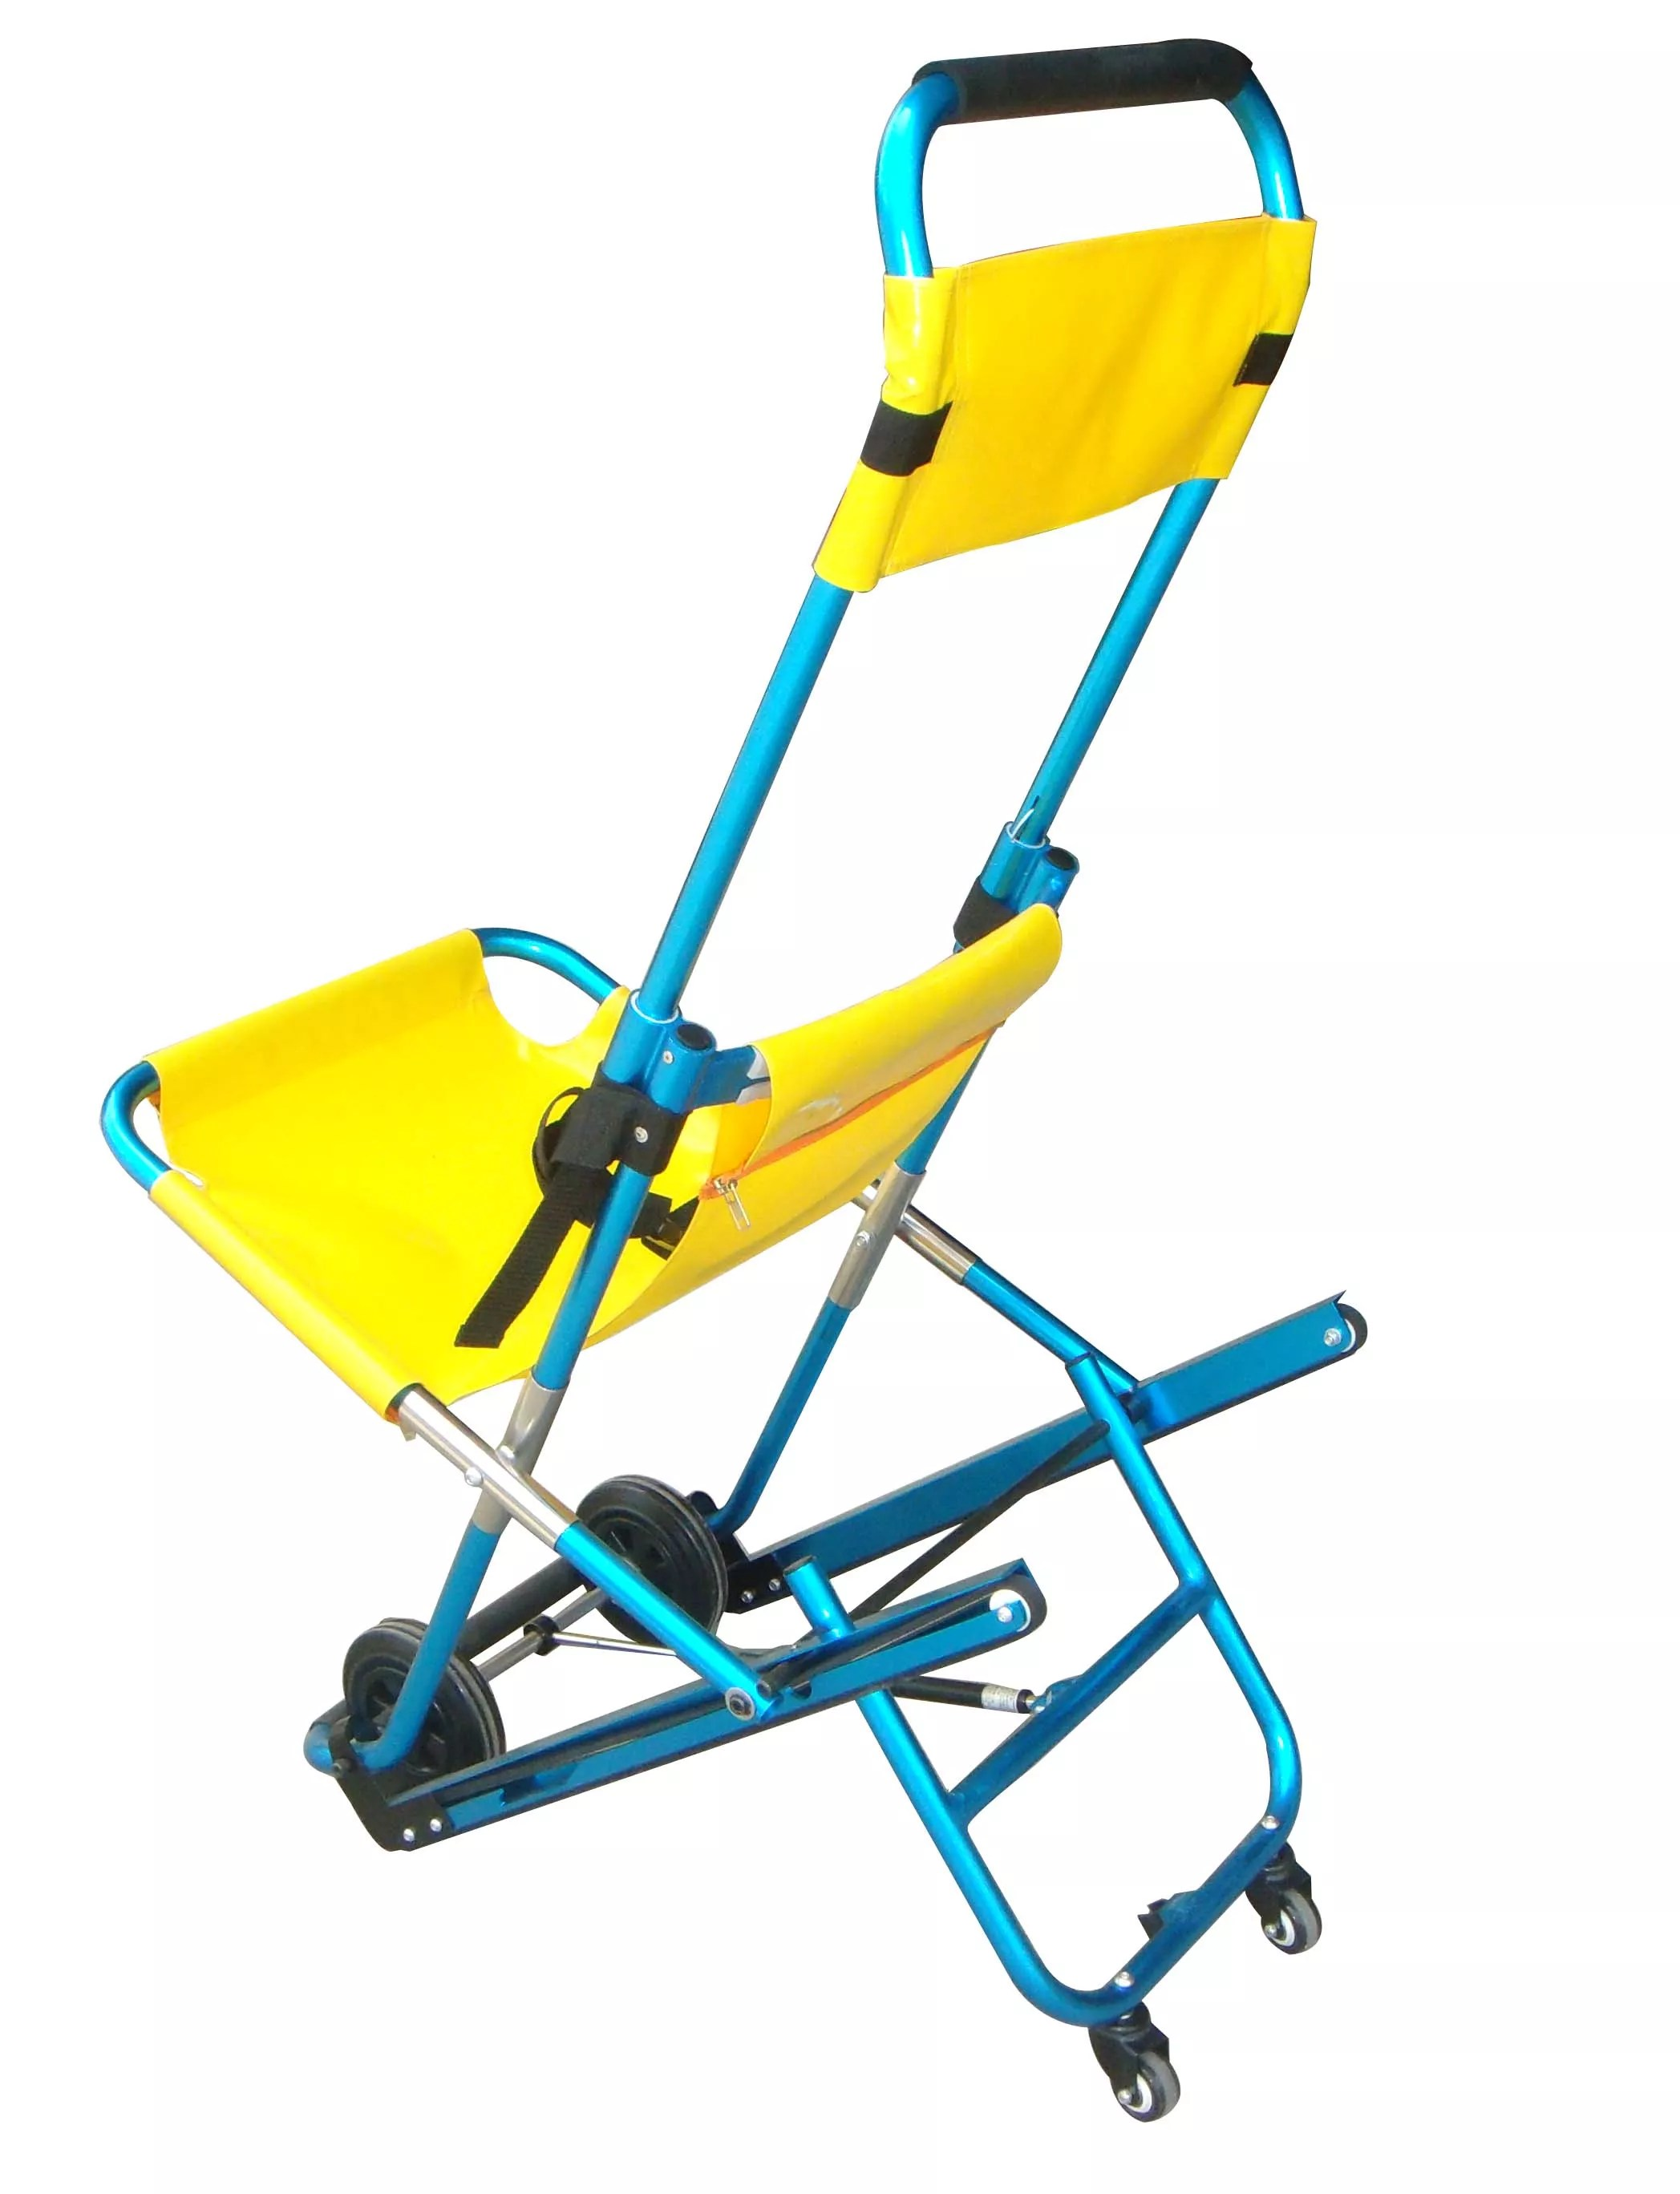 evac chair canada bar stool uk emergency evacuation staircase stretcher lift patient